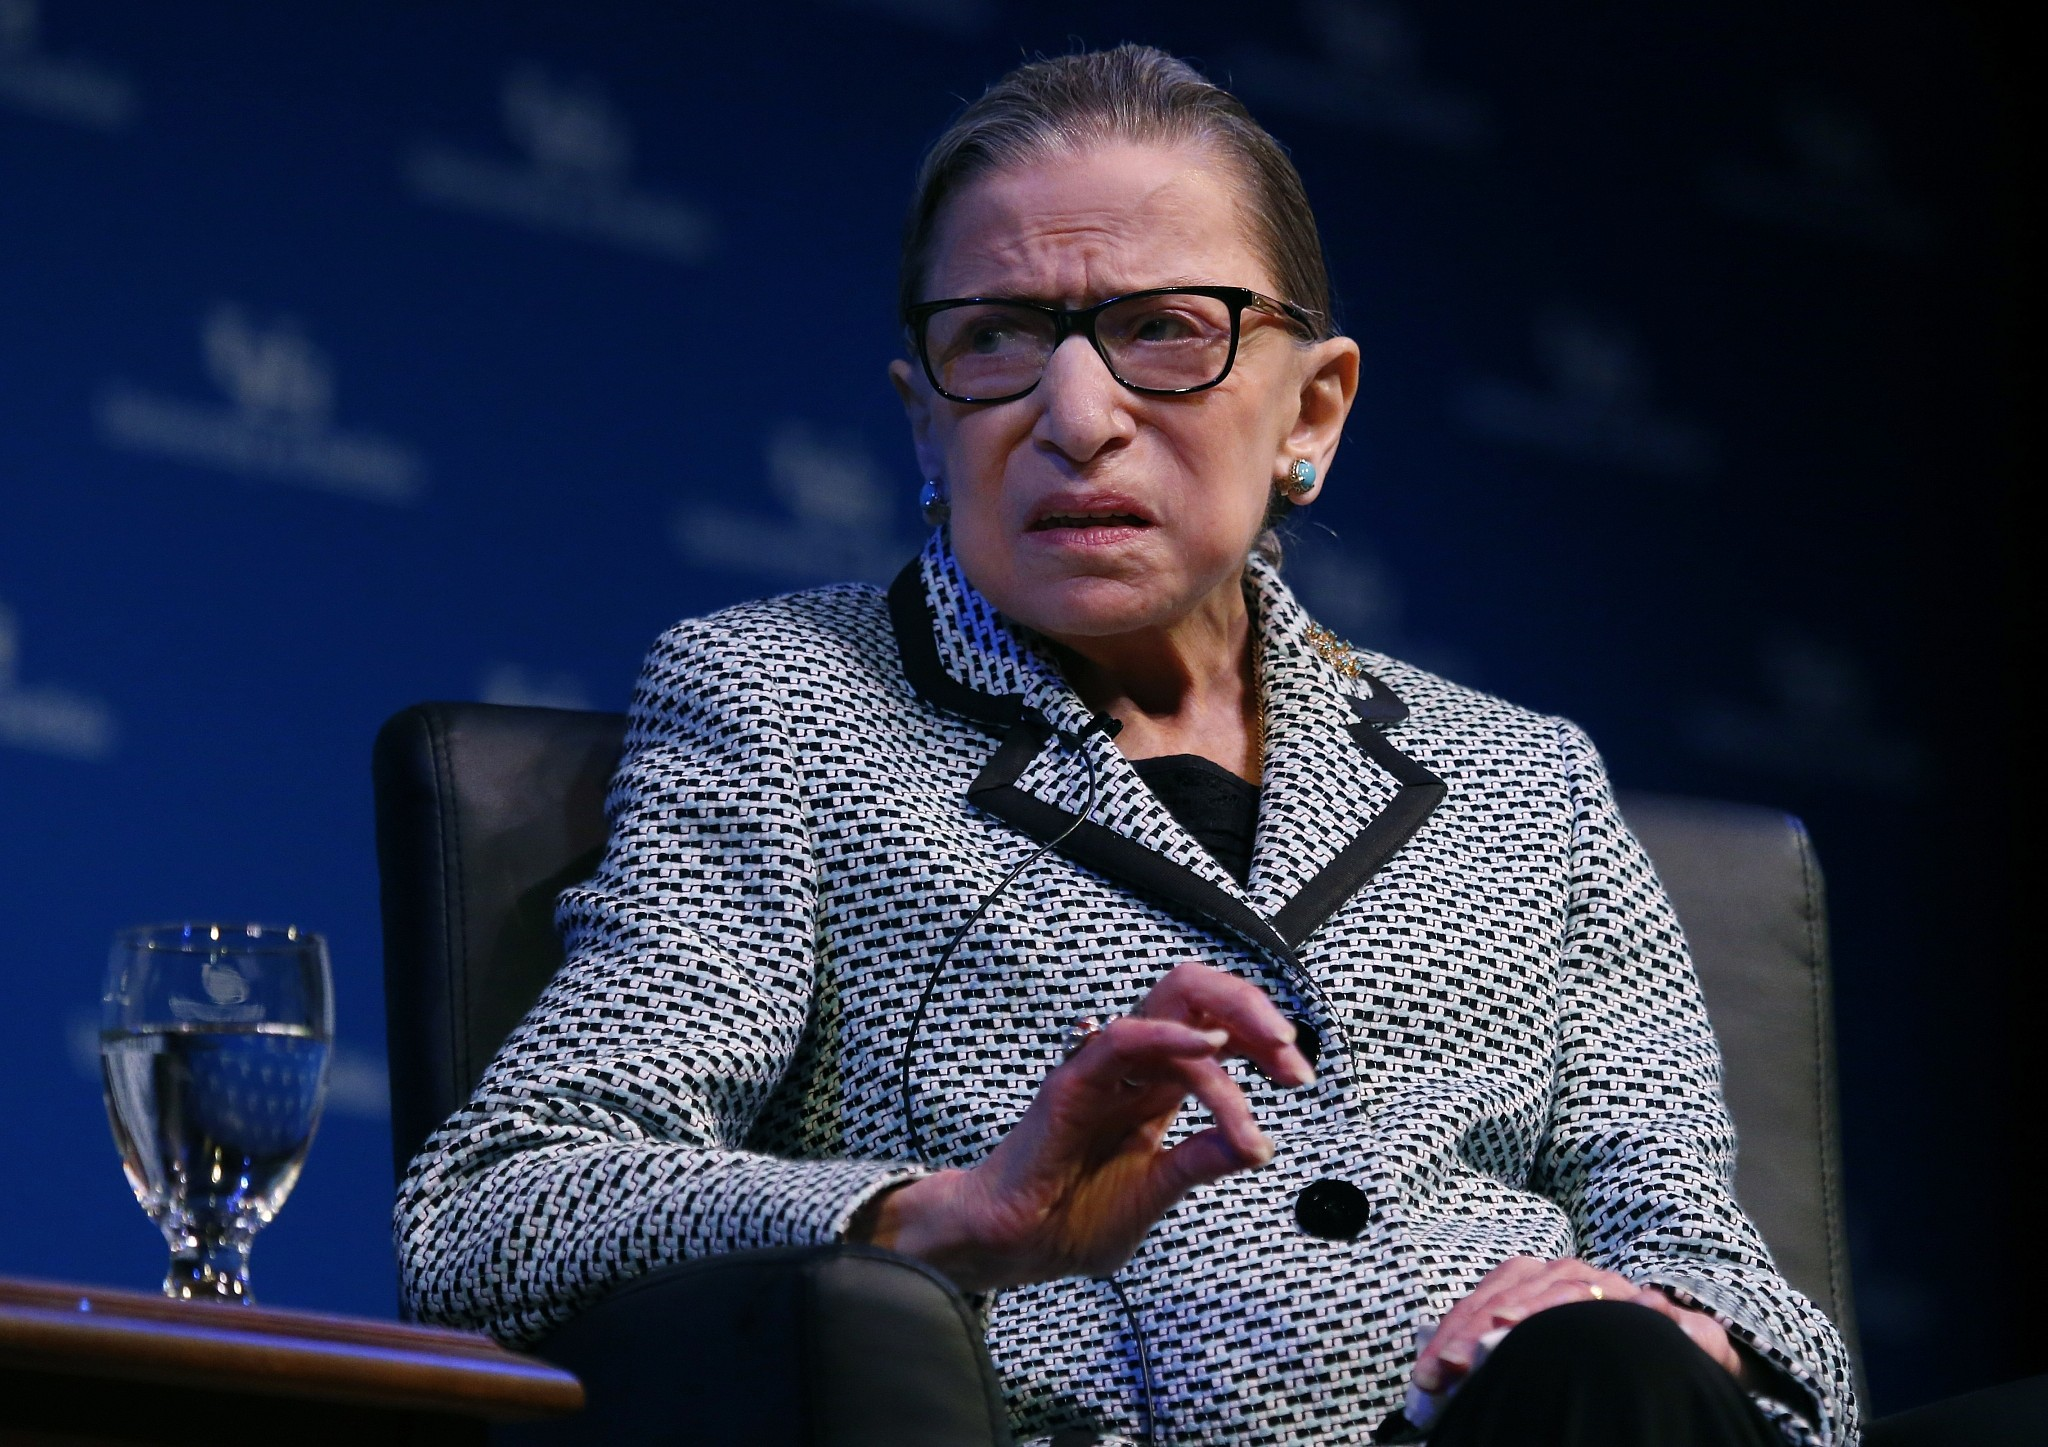 Ruth Bader Ginsburg 'on way to being very well' after cancer treatment